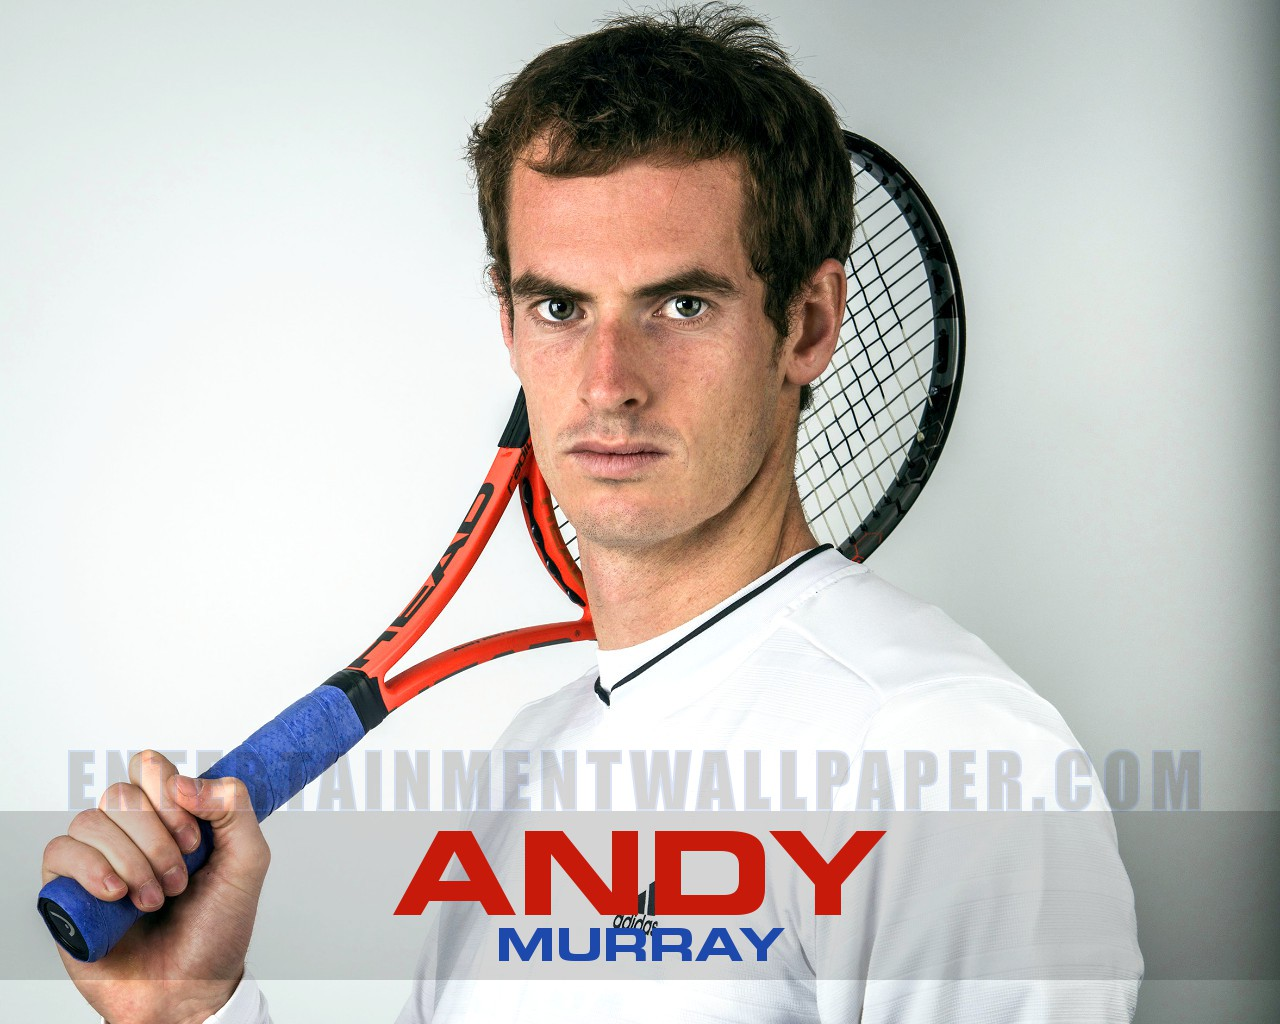 Andy Murray Wallpaper #232083 - Resolution 1280x1024 px